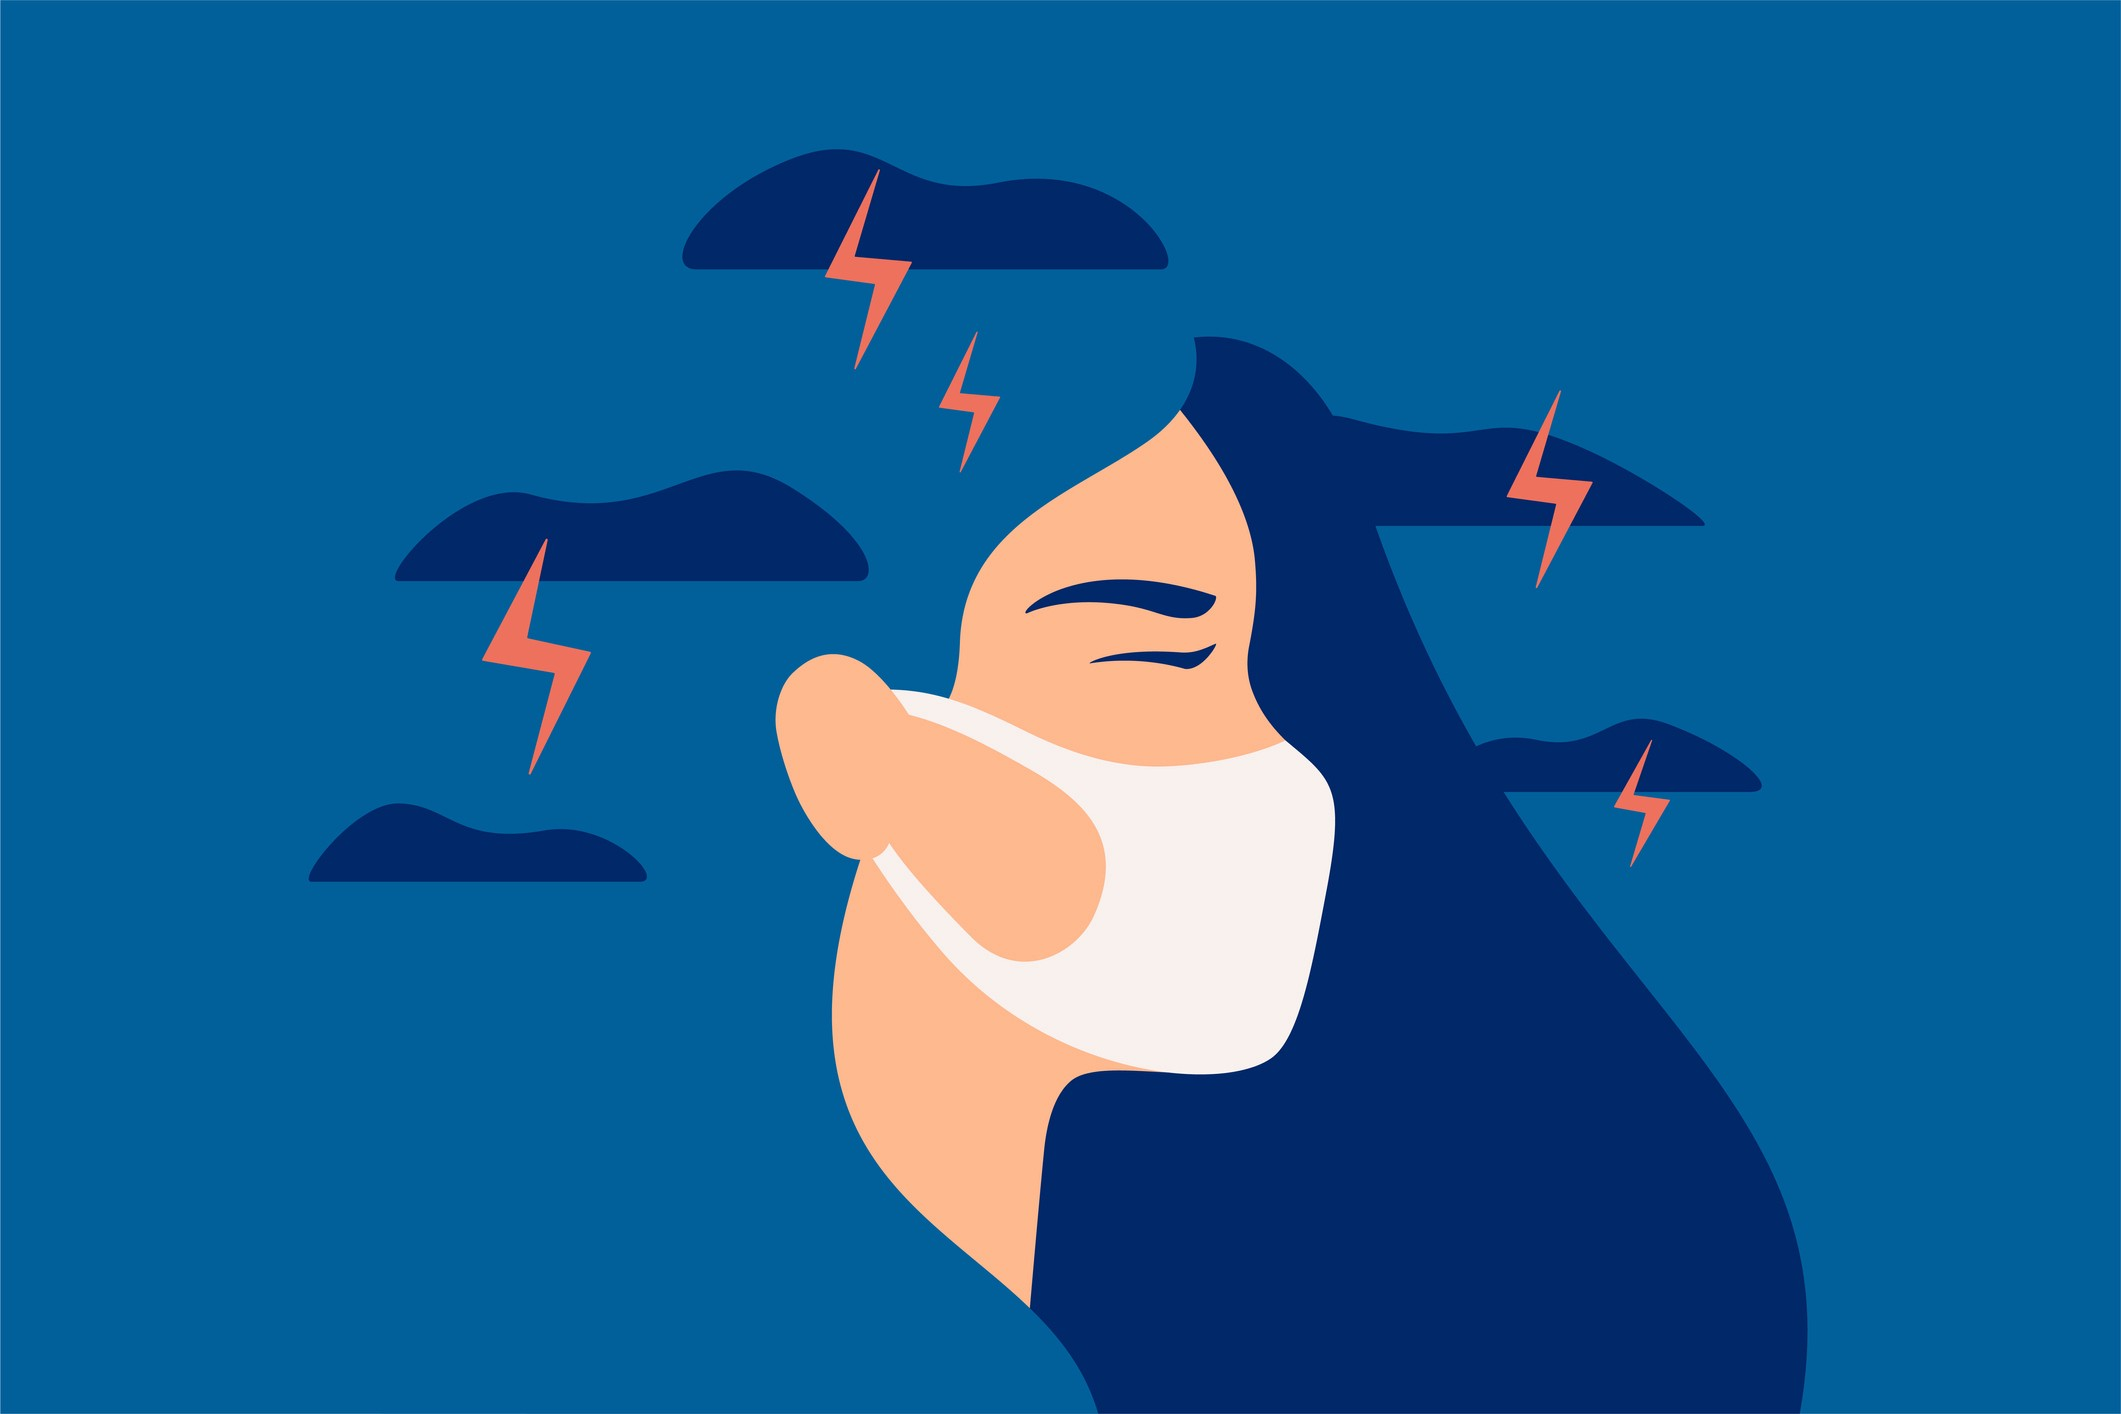 Illustration of a woman in a protective mask, with clouds and lightning flashing behind her to illustrate anxiety and gloomy thoughts.